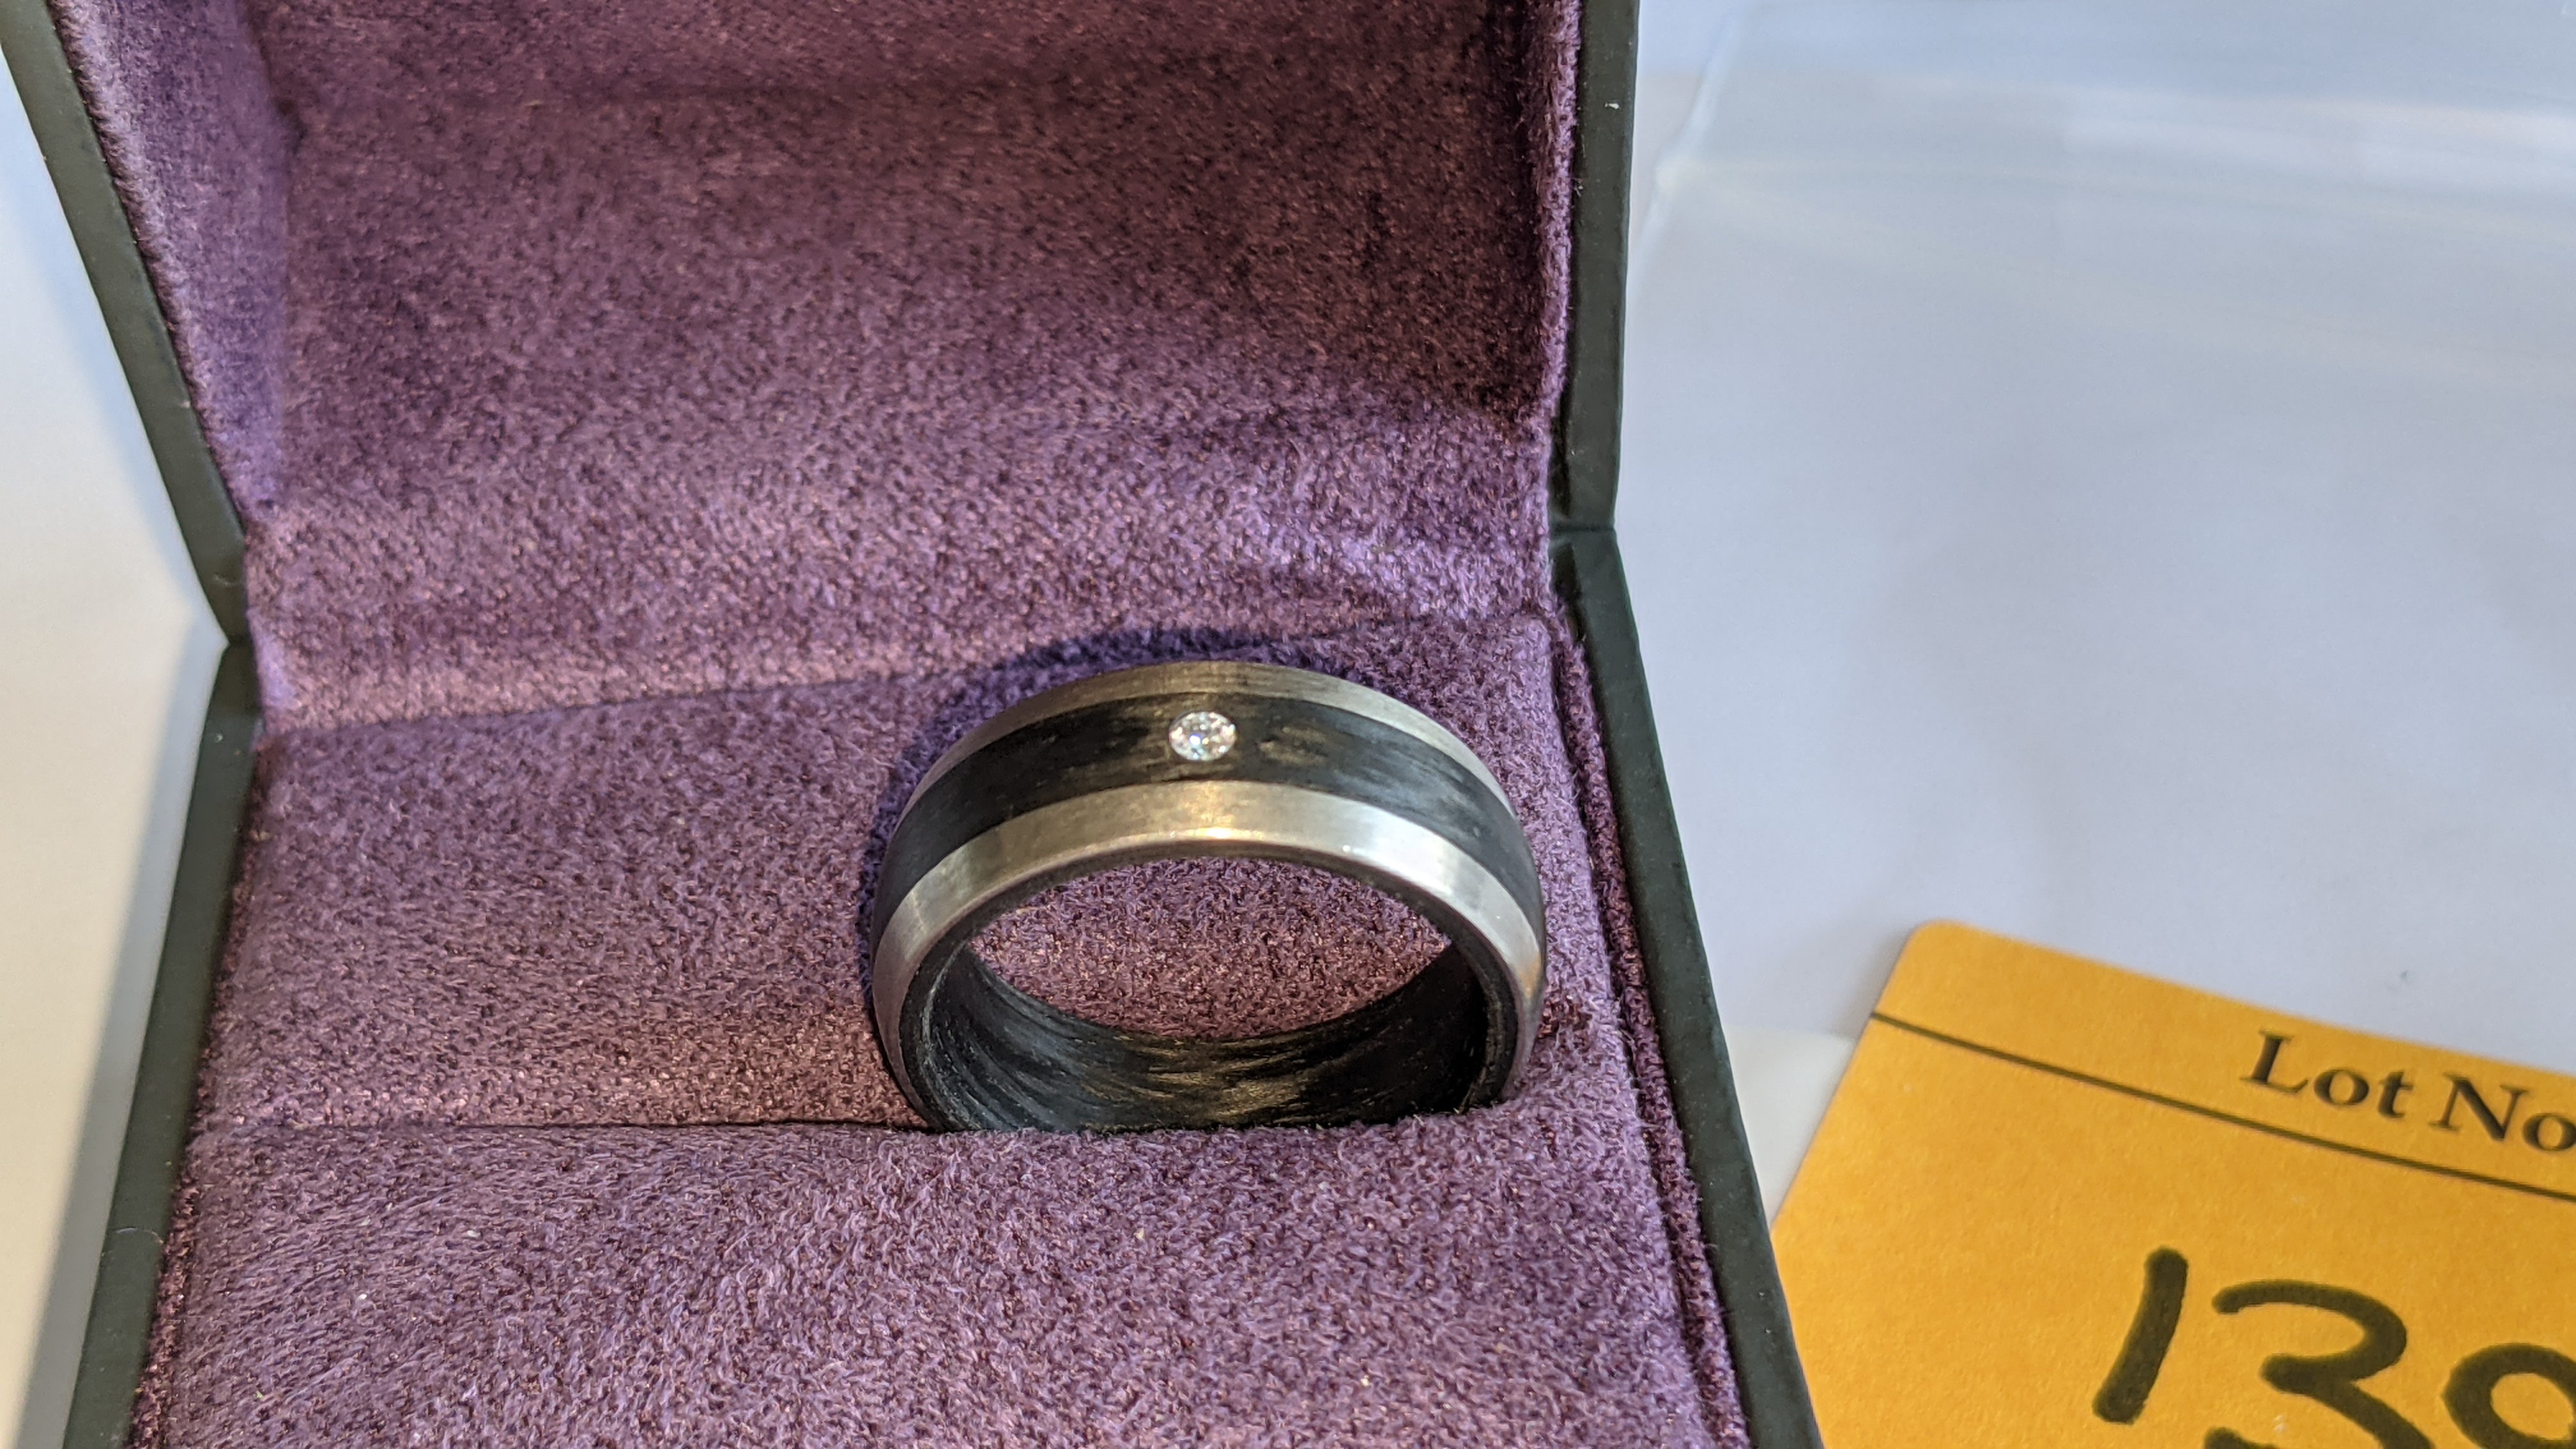 Ring understood to be made of Palladium, carbon & diamond - no price sticker or labelling on this ri - Image 3 of 13